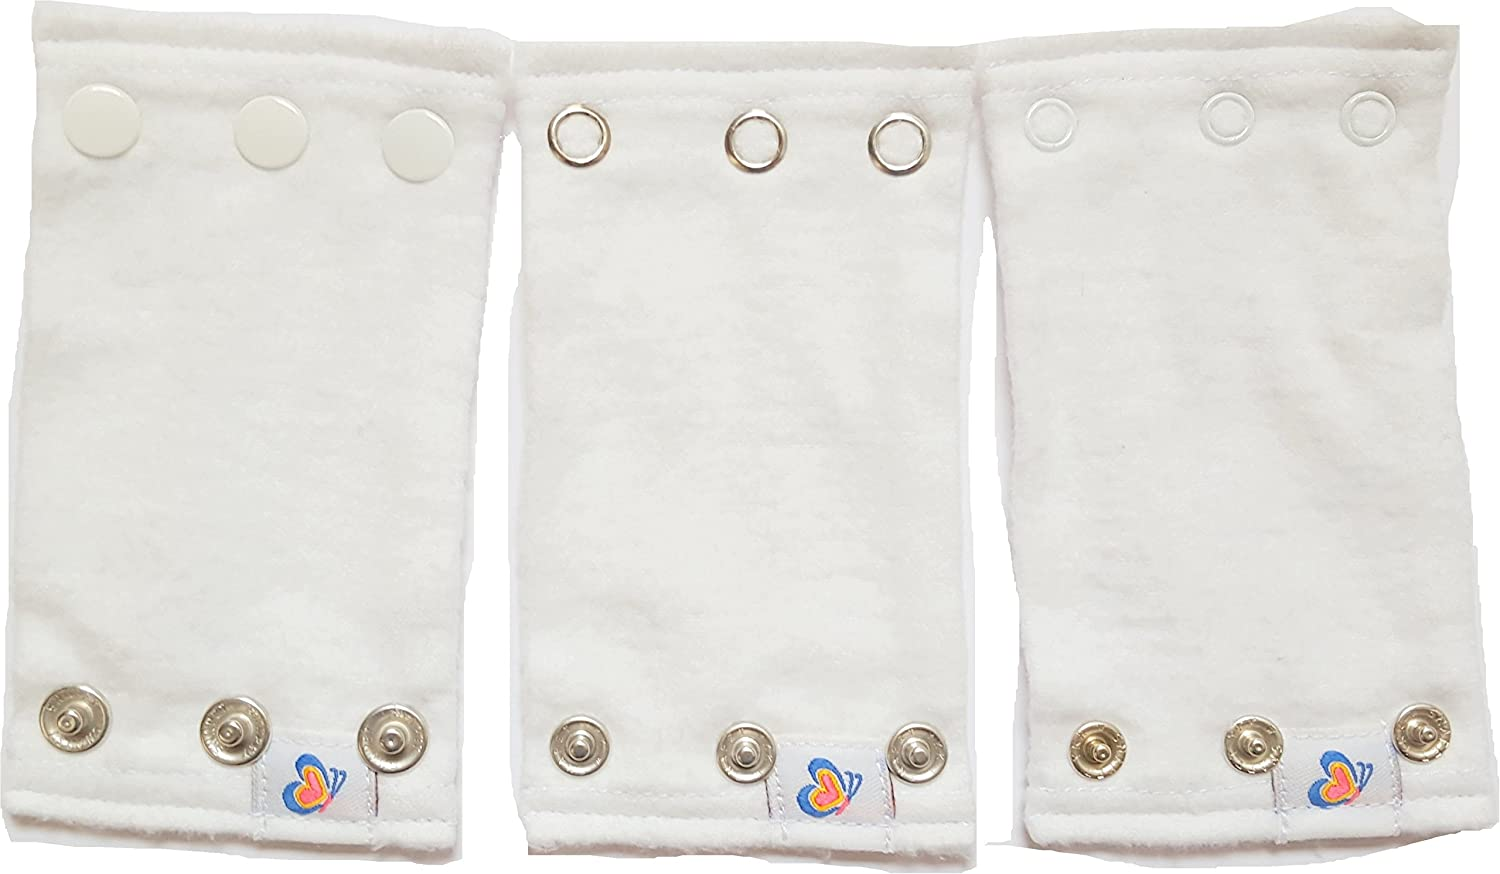 Bodysuit Extenders Pack of 3, White, 3 Different Size Snaps W6Wh3